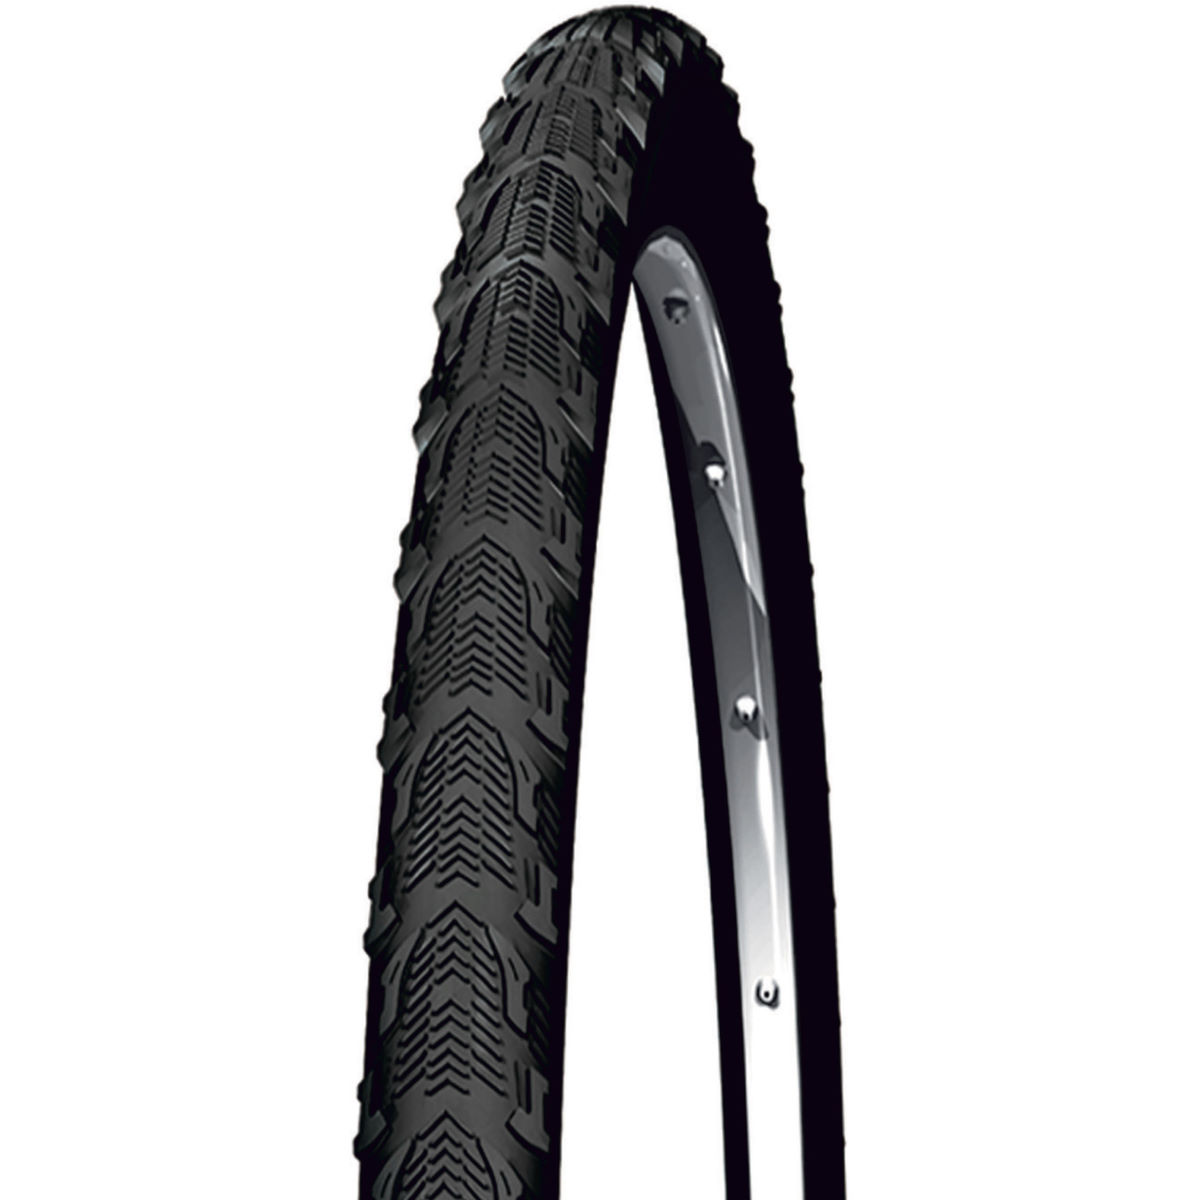 Pneu cyclo-cross Michelin Cyclocross Jet (souple) - 700 x 30c Noir